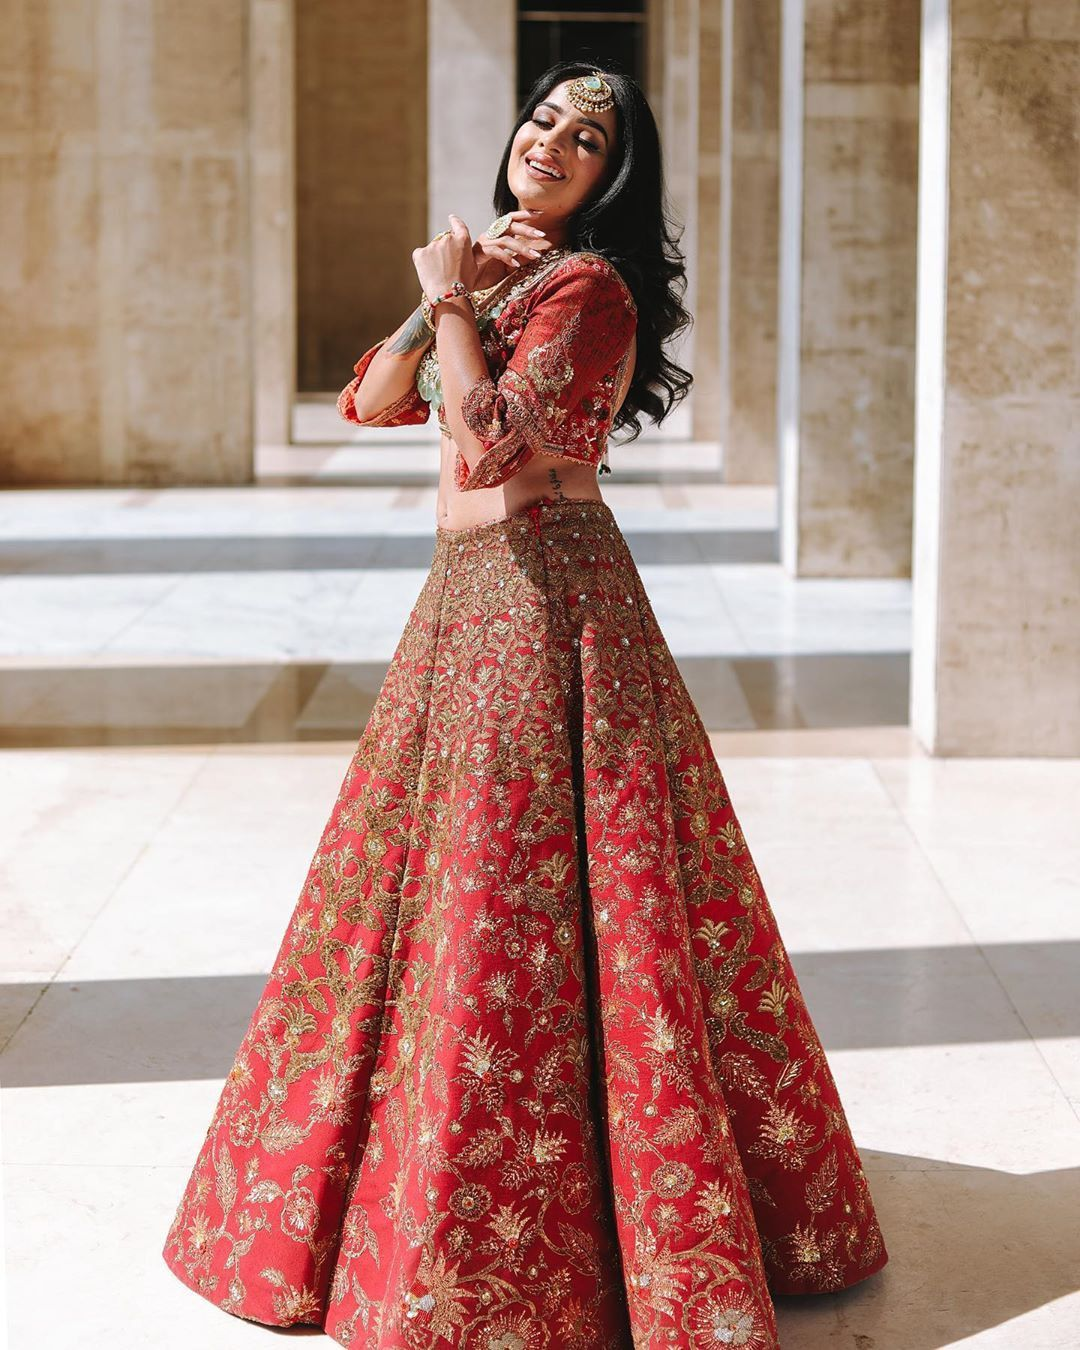 Redlehenga Makes The Bride More Beautiful And Her Smile That